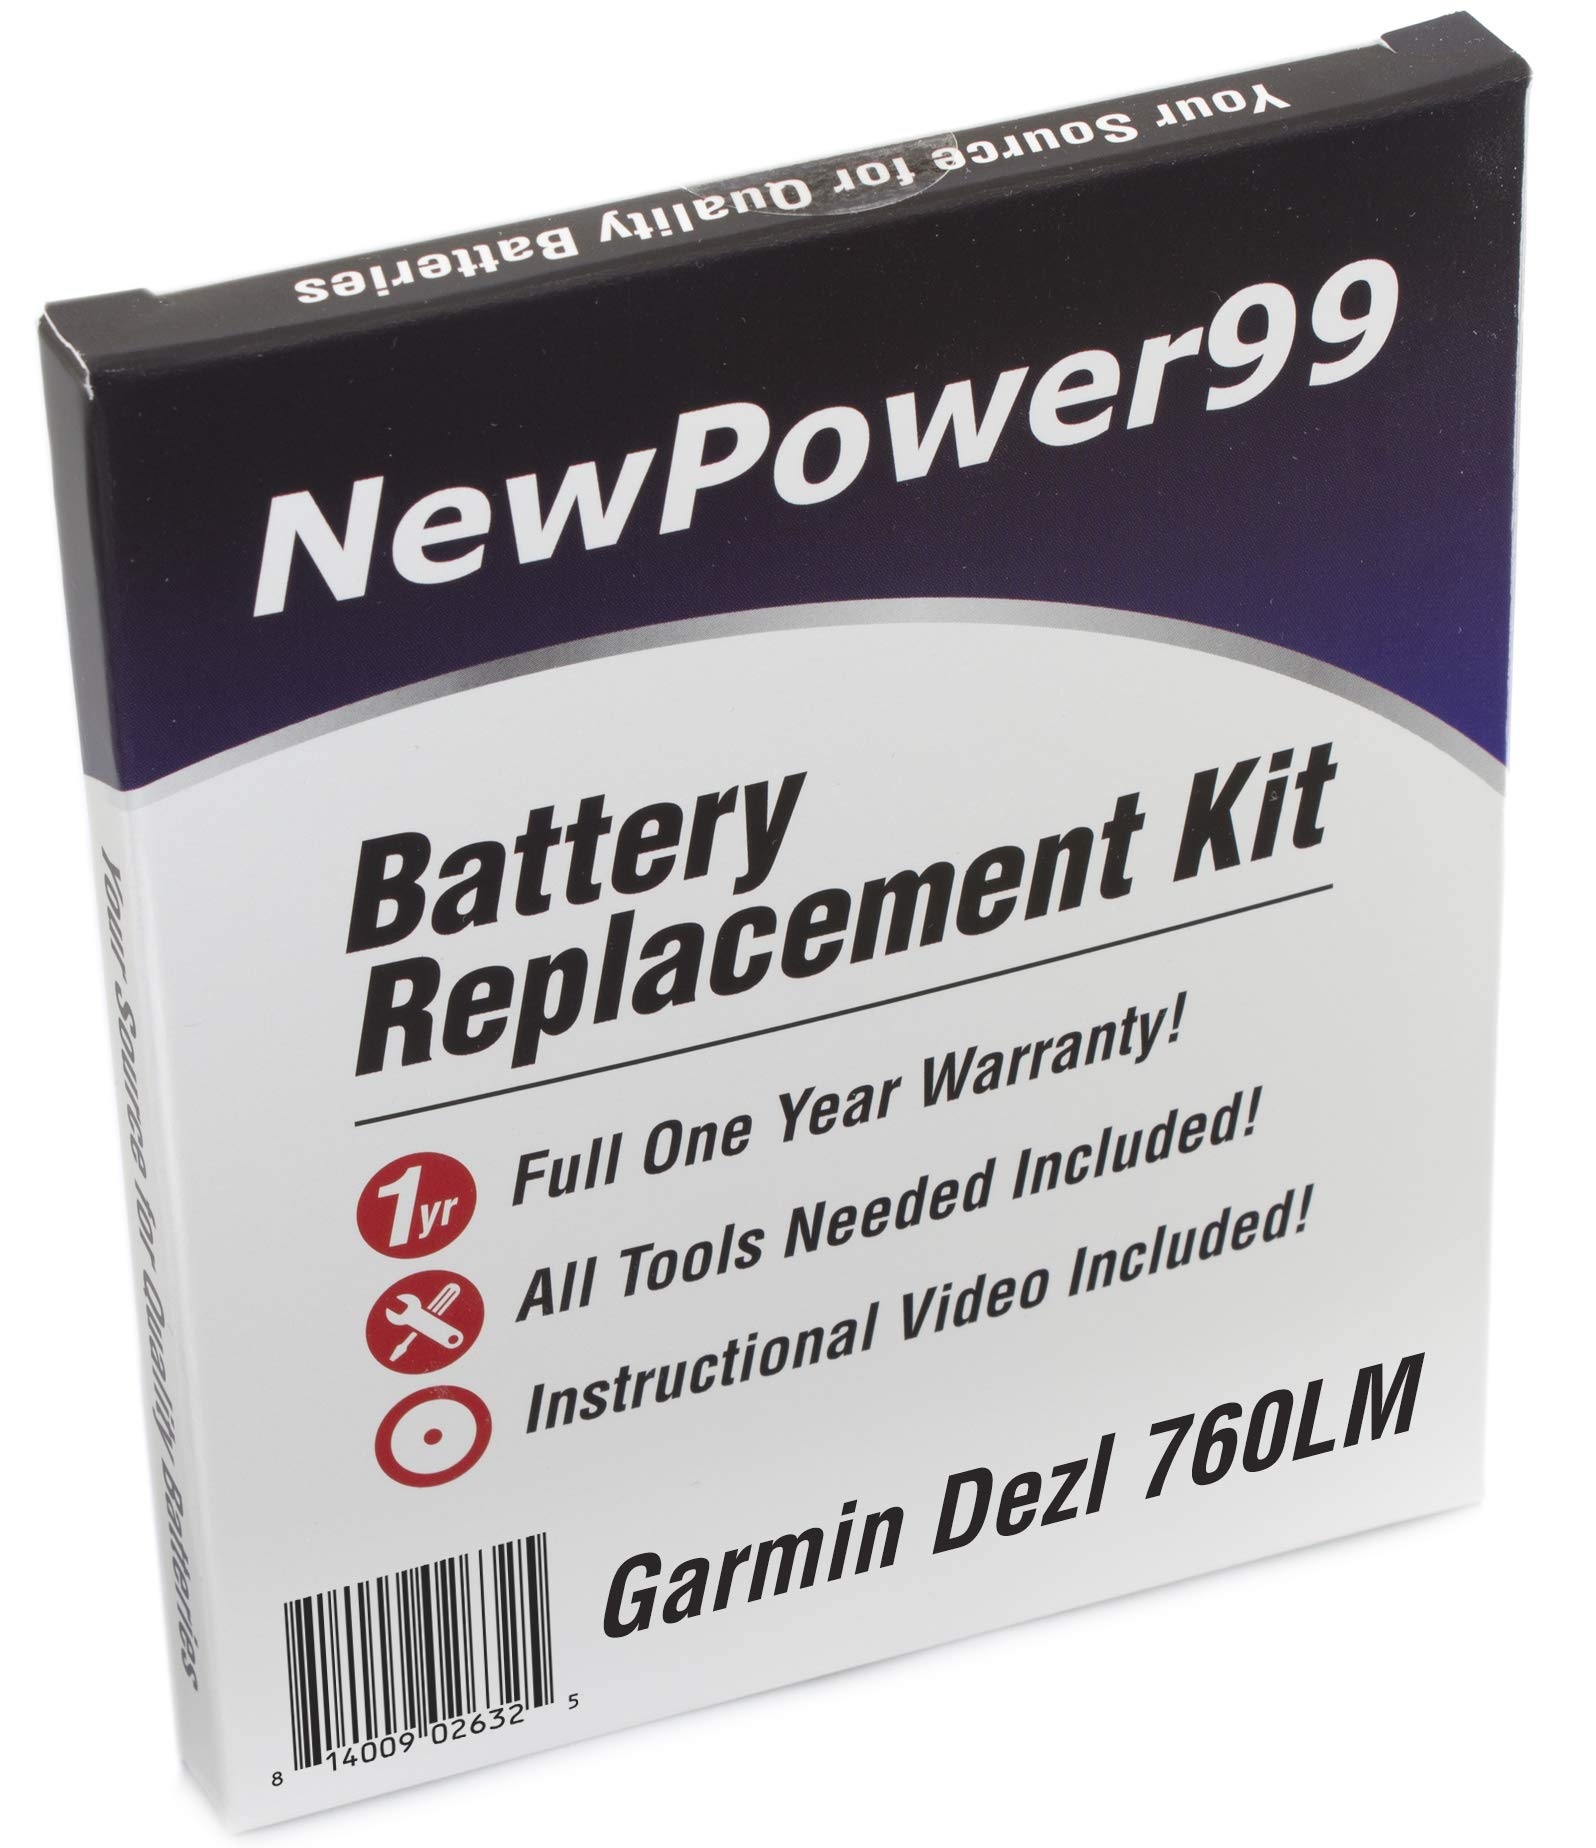 Battery Replacement Kit Garmin Dezl 760LM Installation Video, Tools Extended Life Battery. by NewPower99 (Image #1)